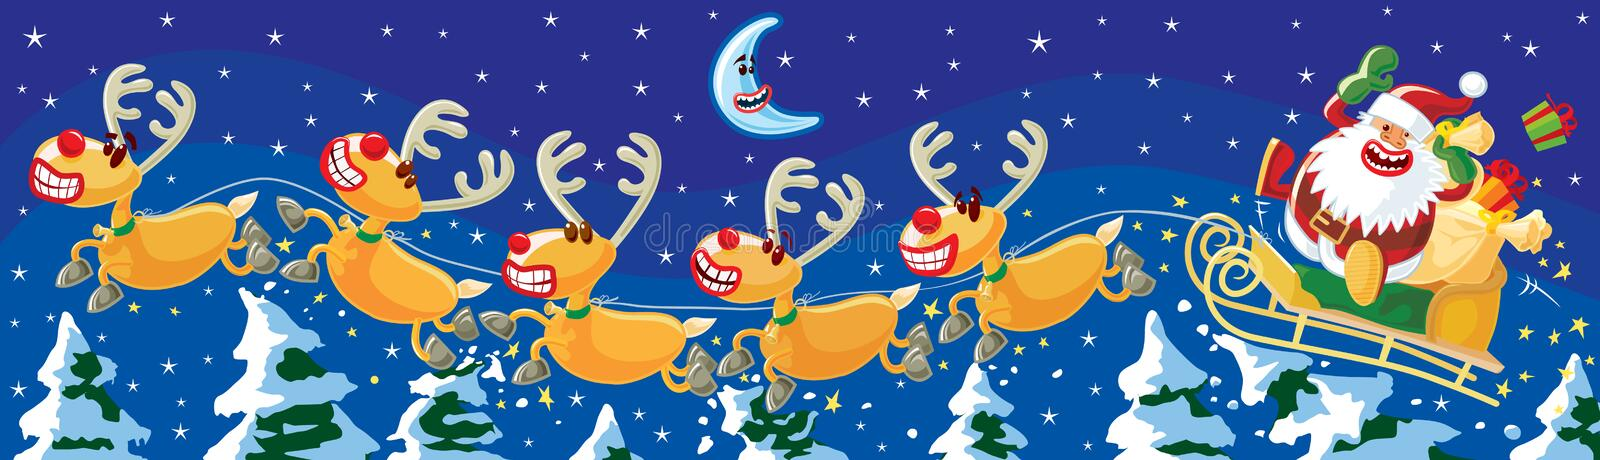 Santa and reindeers at night. Funny Christmas illustration. Santa and Rudolph jumping over trees, night scene. Vector without gradients, great for printing vector illustration